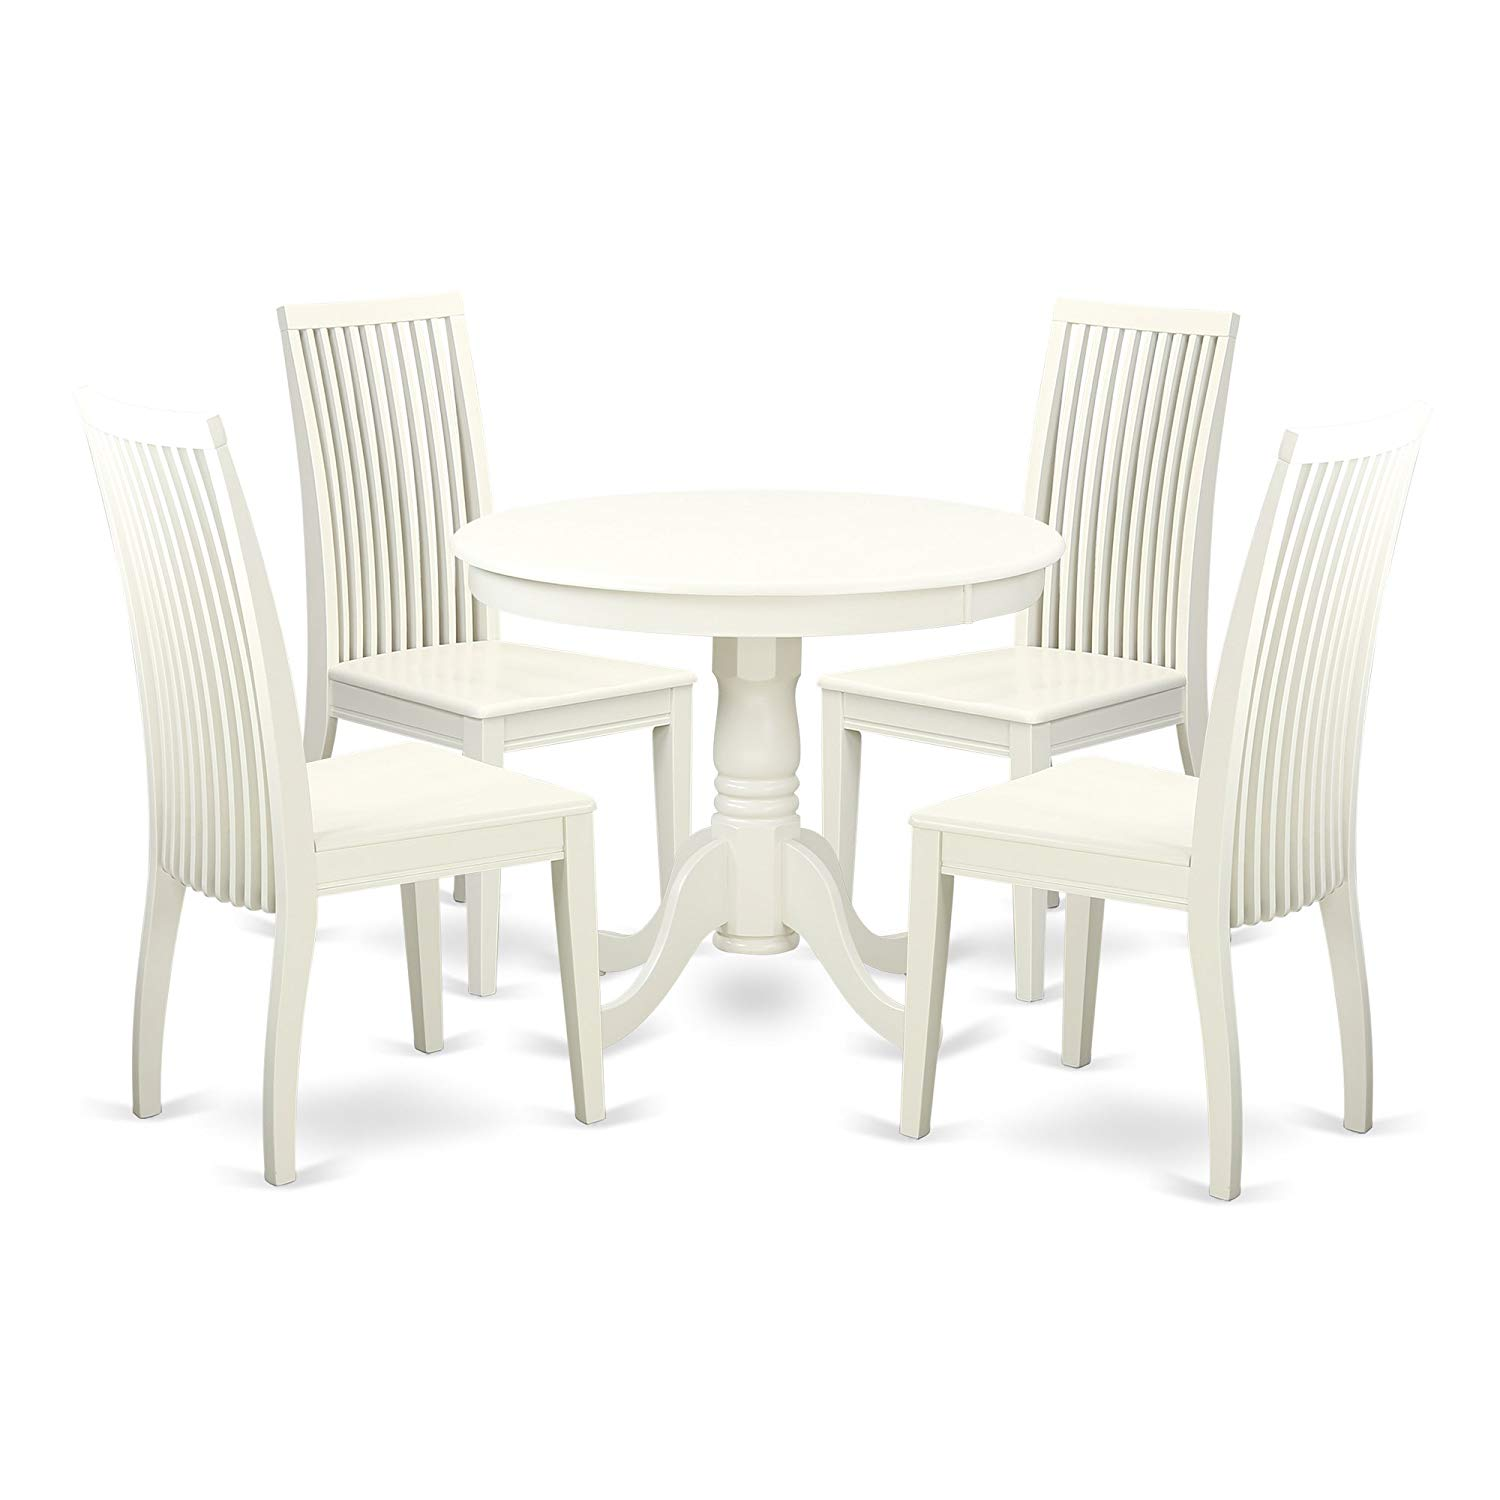 East West Furniture ANIP5-LWH-W Kitchen Set, Small, Linen White